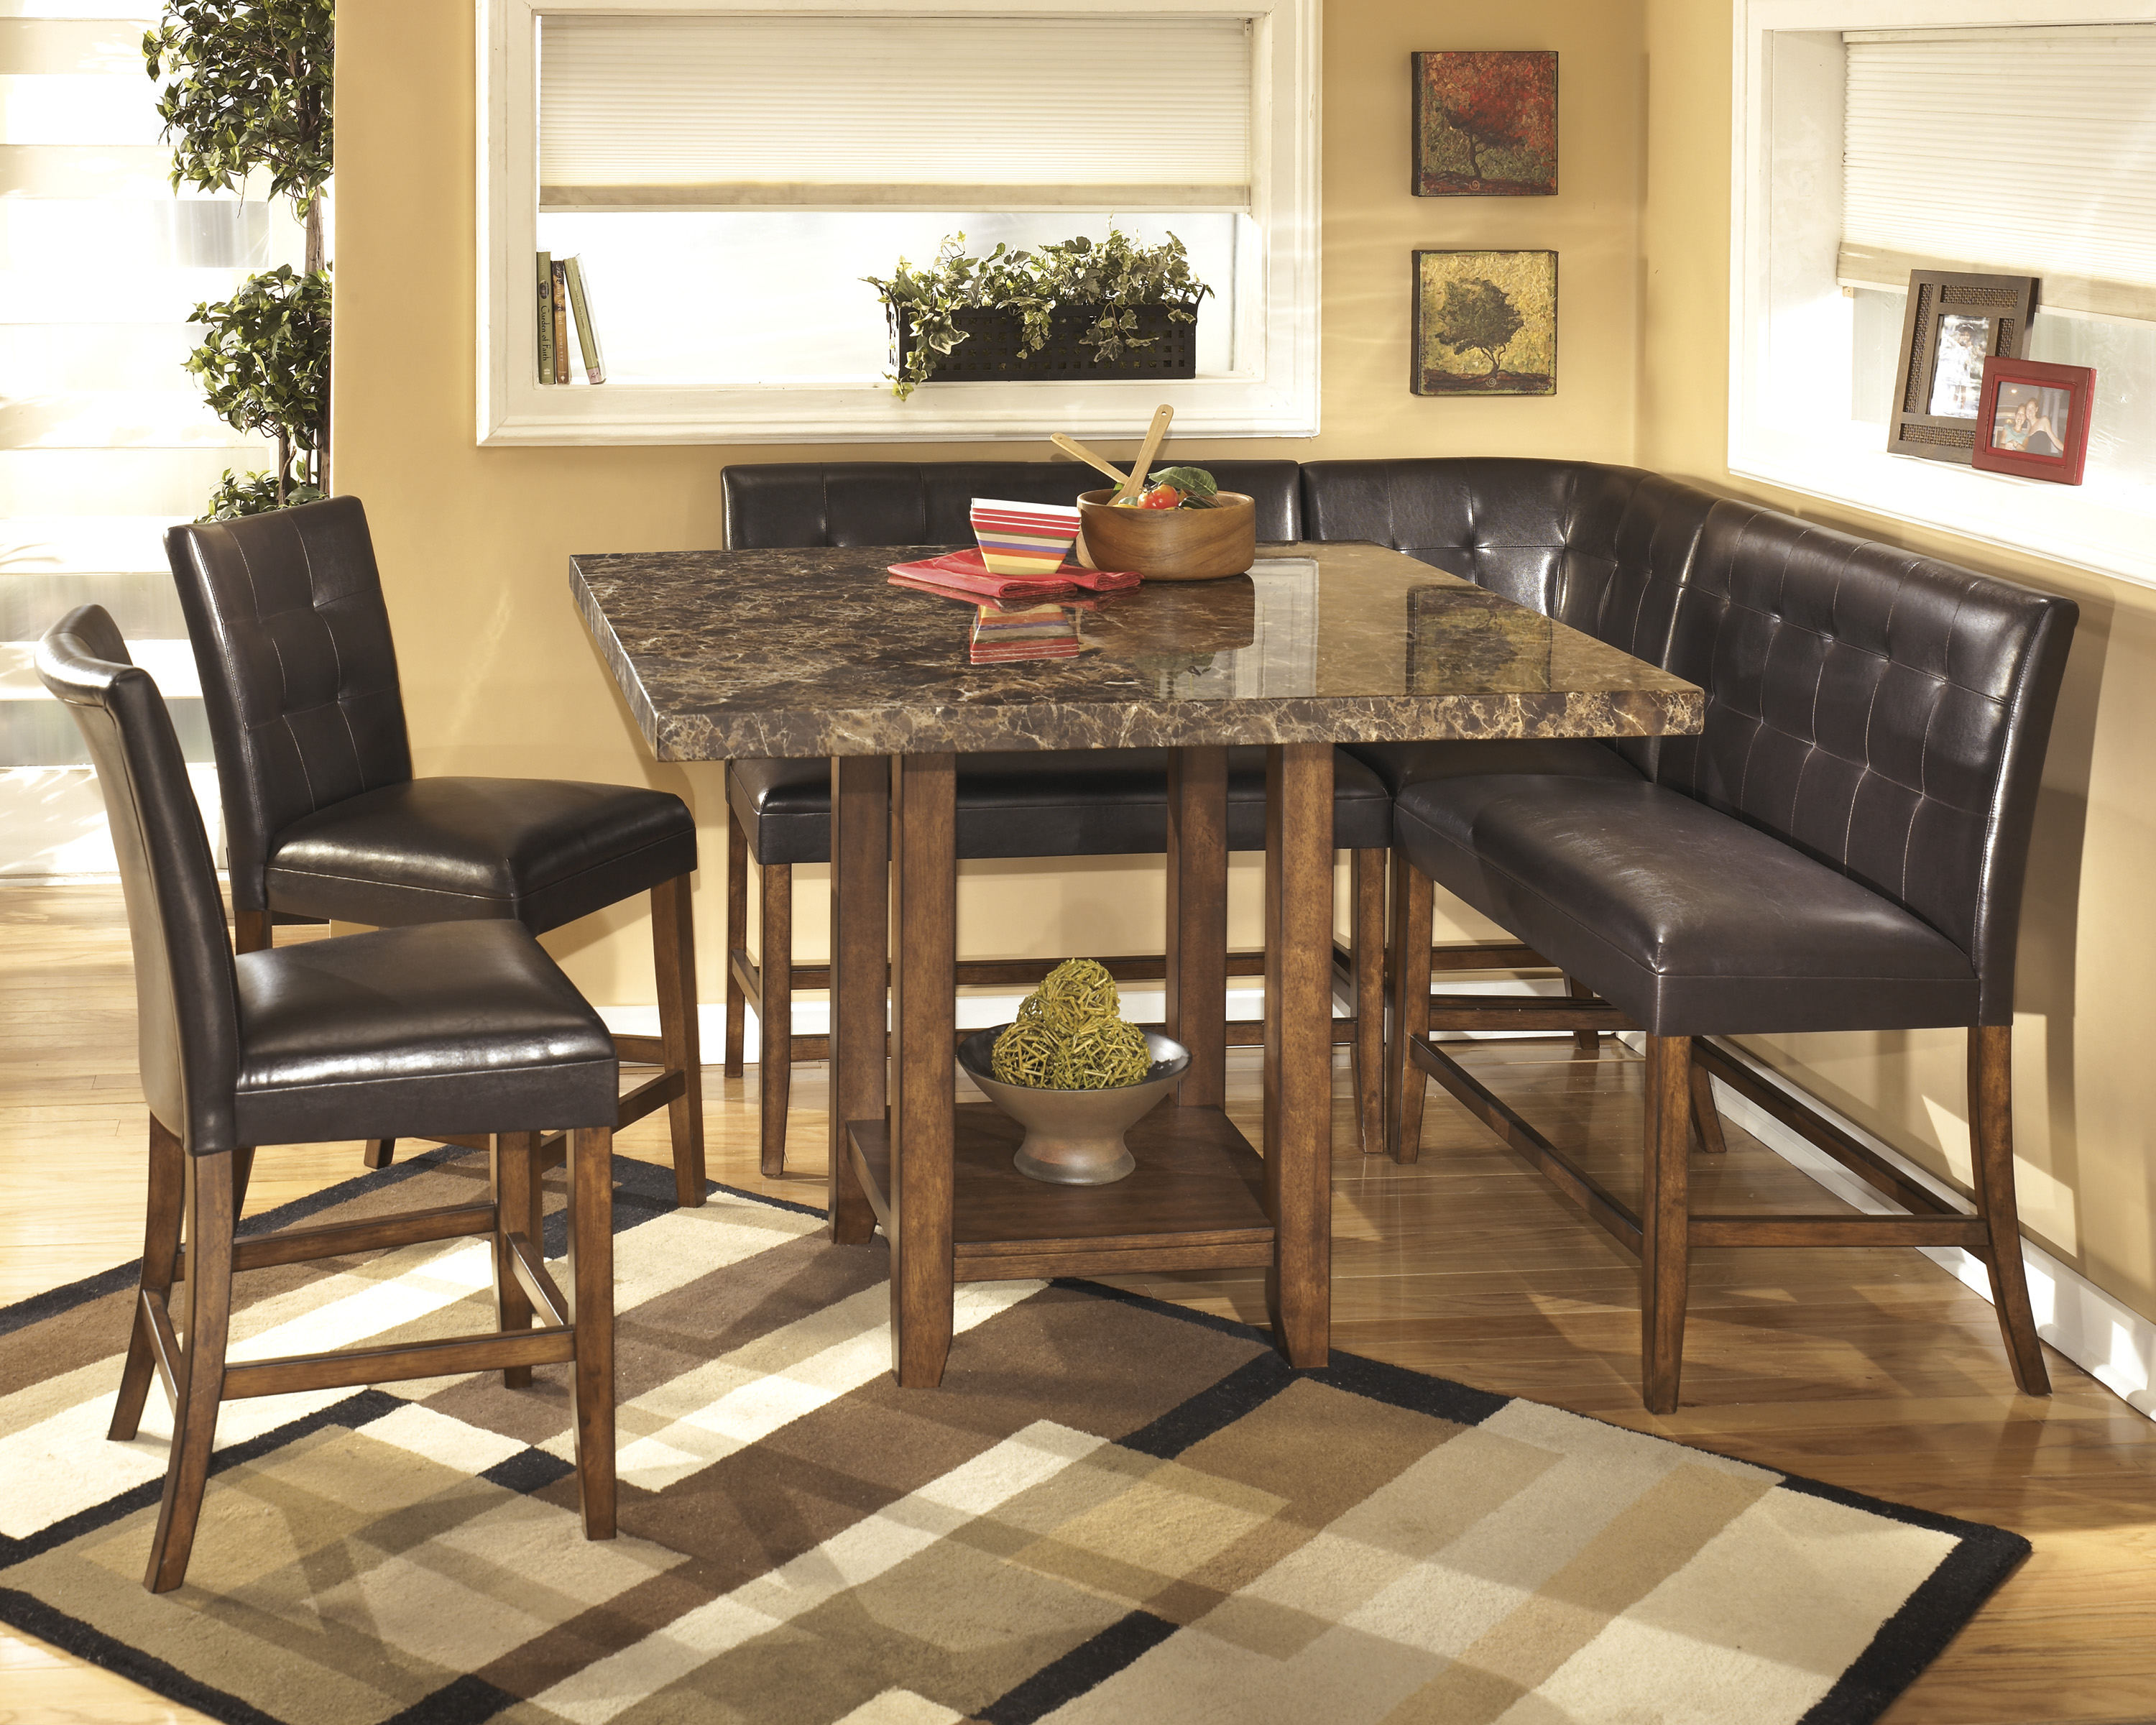 check out our great prices on kitchen tables and dining room sets from your local home decor kitchen tables and more image To learn more about our Kitchen Tables and